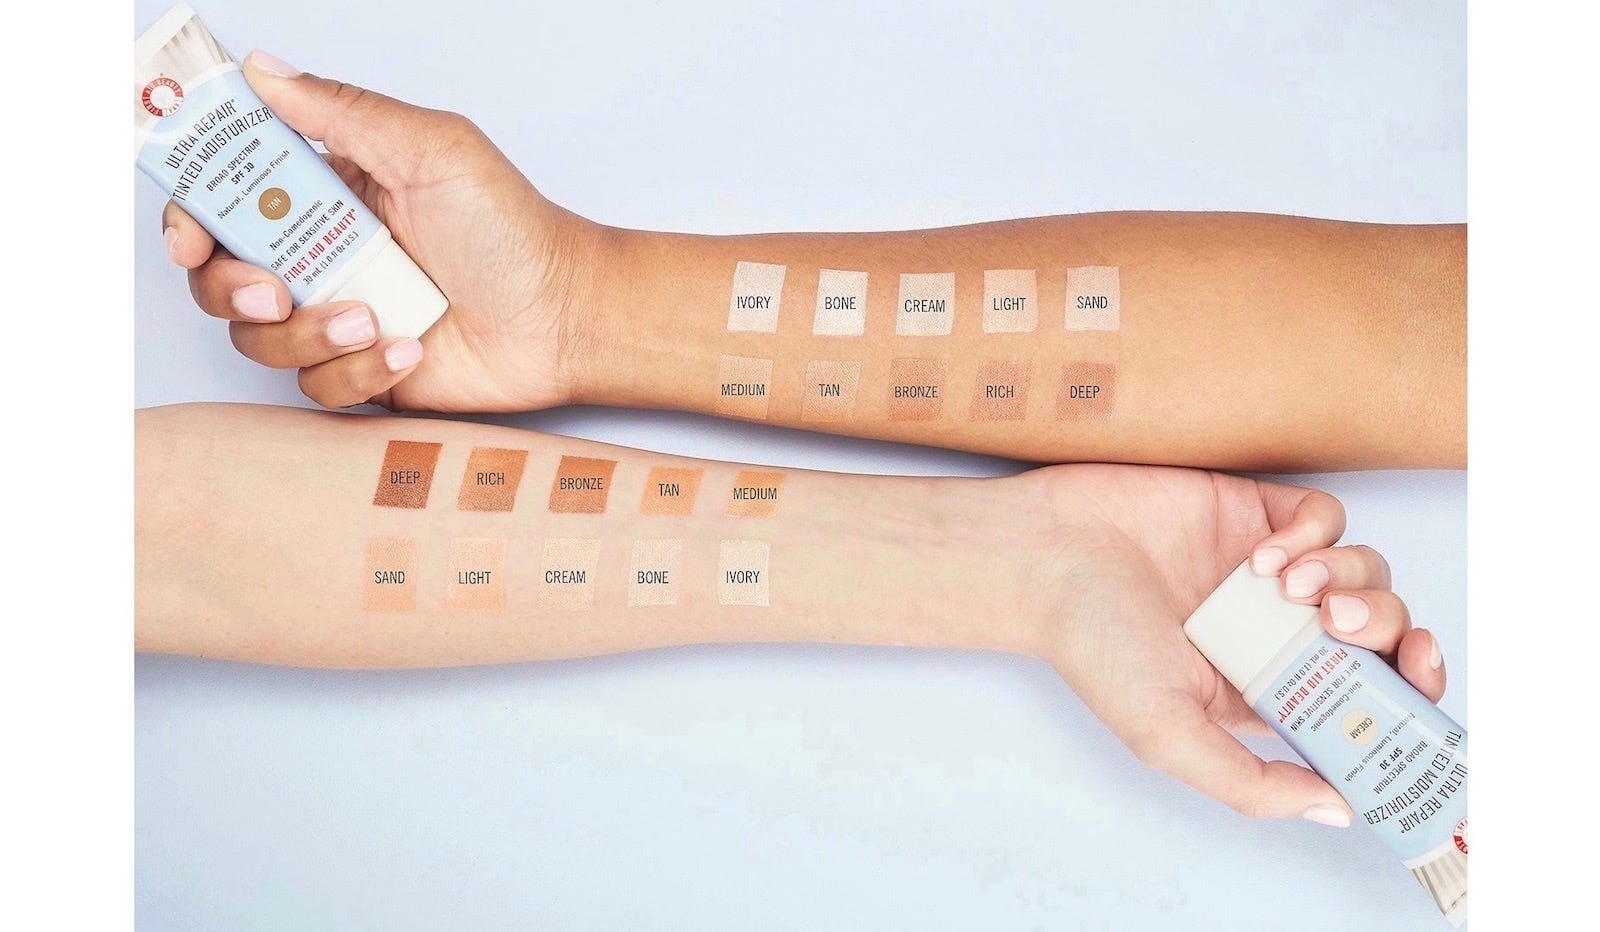 Two arms extended showing the different shades of the product, and the hands each holding a tube of First Aid Beauty Ultra Repair Tinted Moisturizer.